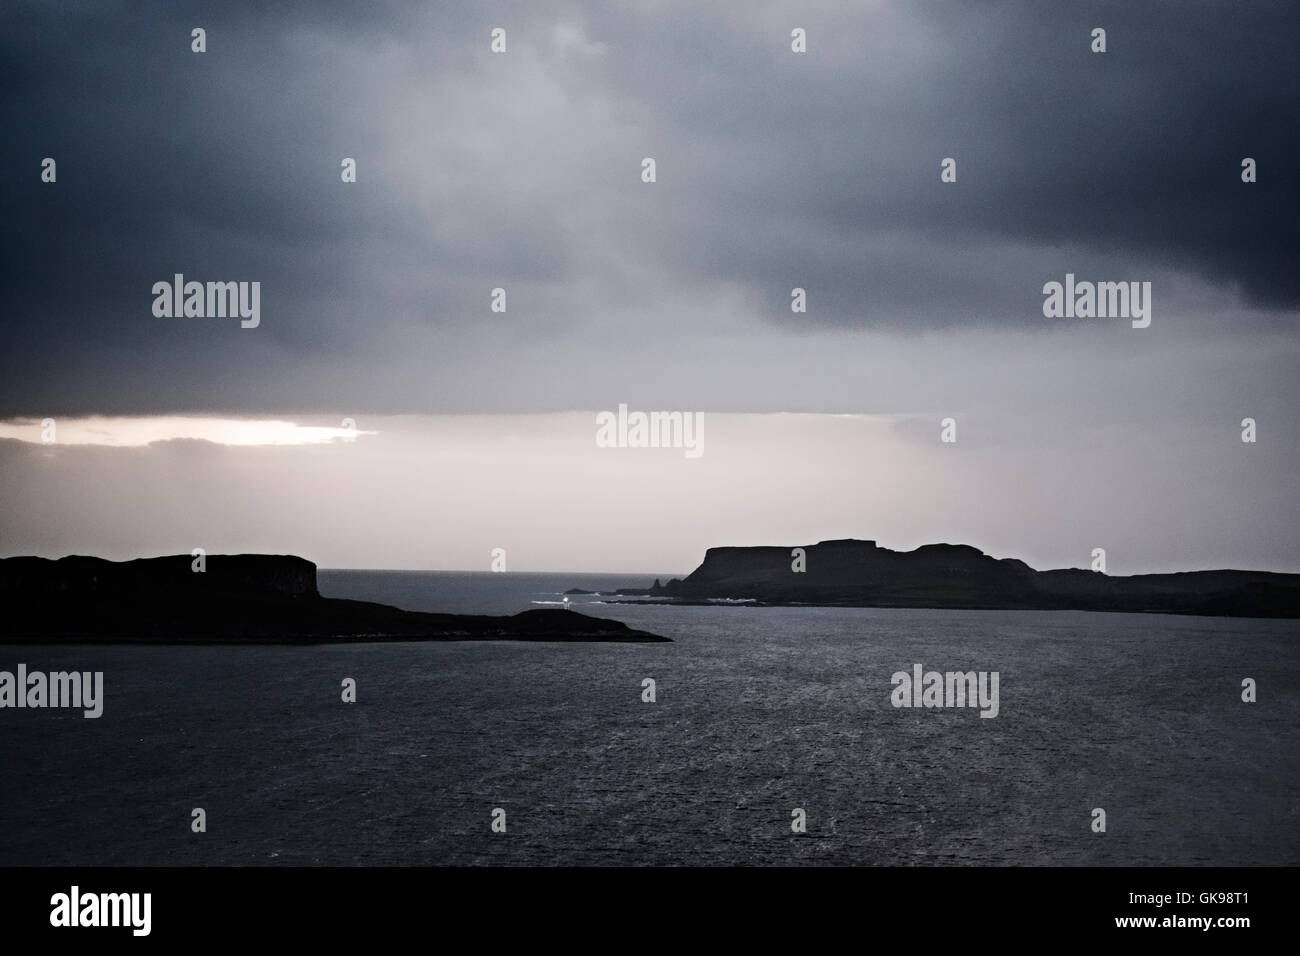 Dusk on the west of the island of Skye looking to Ardtreck Point lighthouse and island of Oronsay. Stock Photo